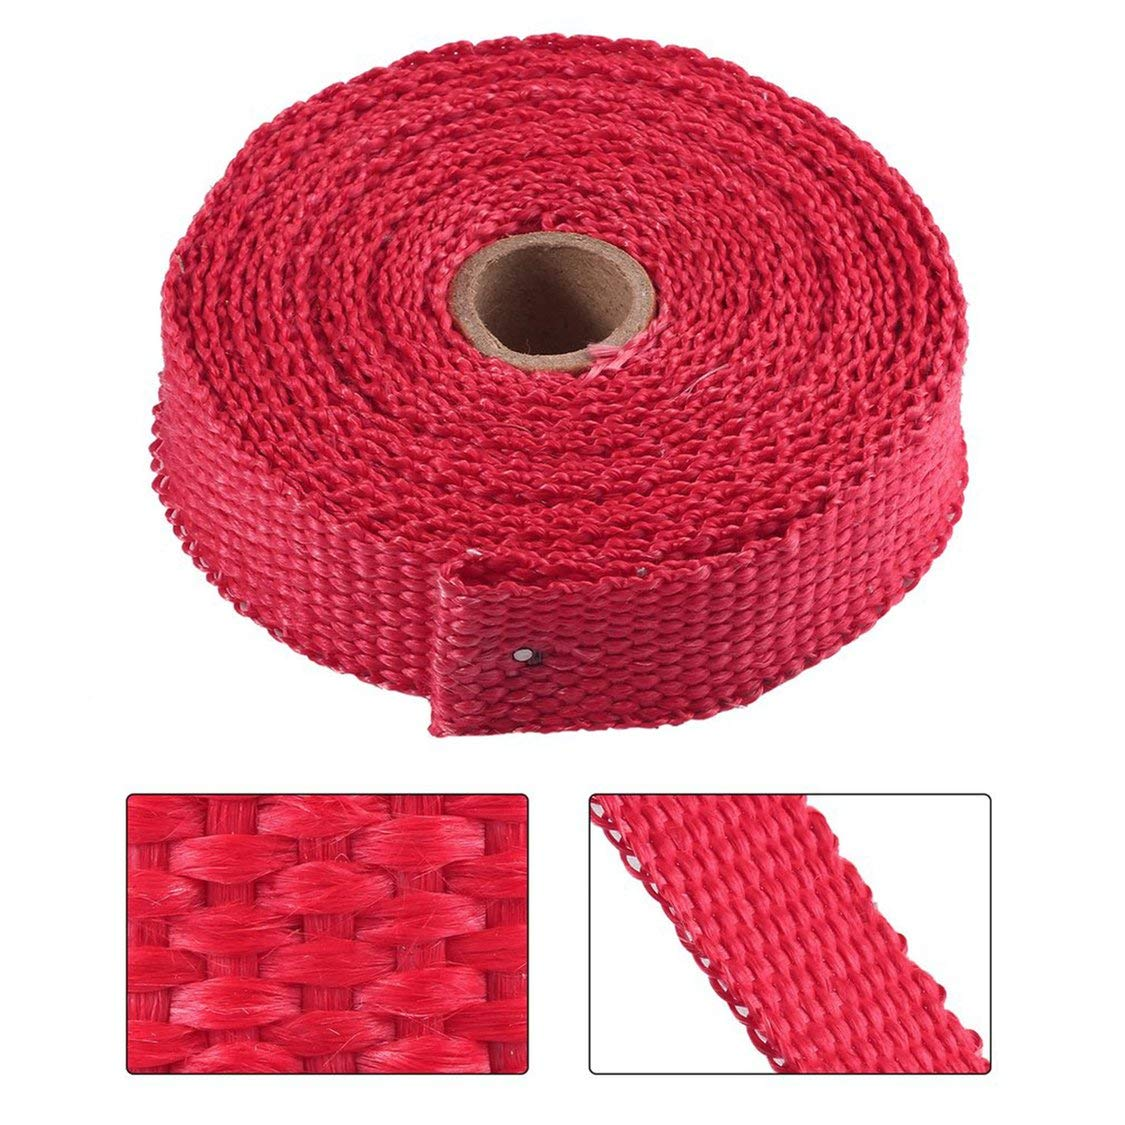 Incombustible Turbo Manifold Insulating Exhaust Header Wrap Tape Thermal Stainless Zip Ties For Cars Motorcycles